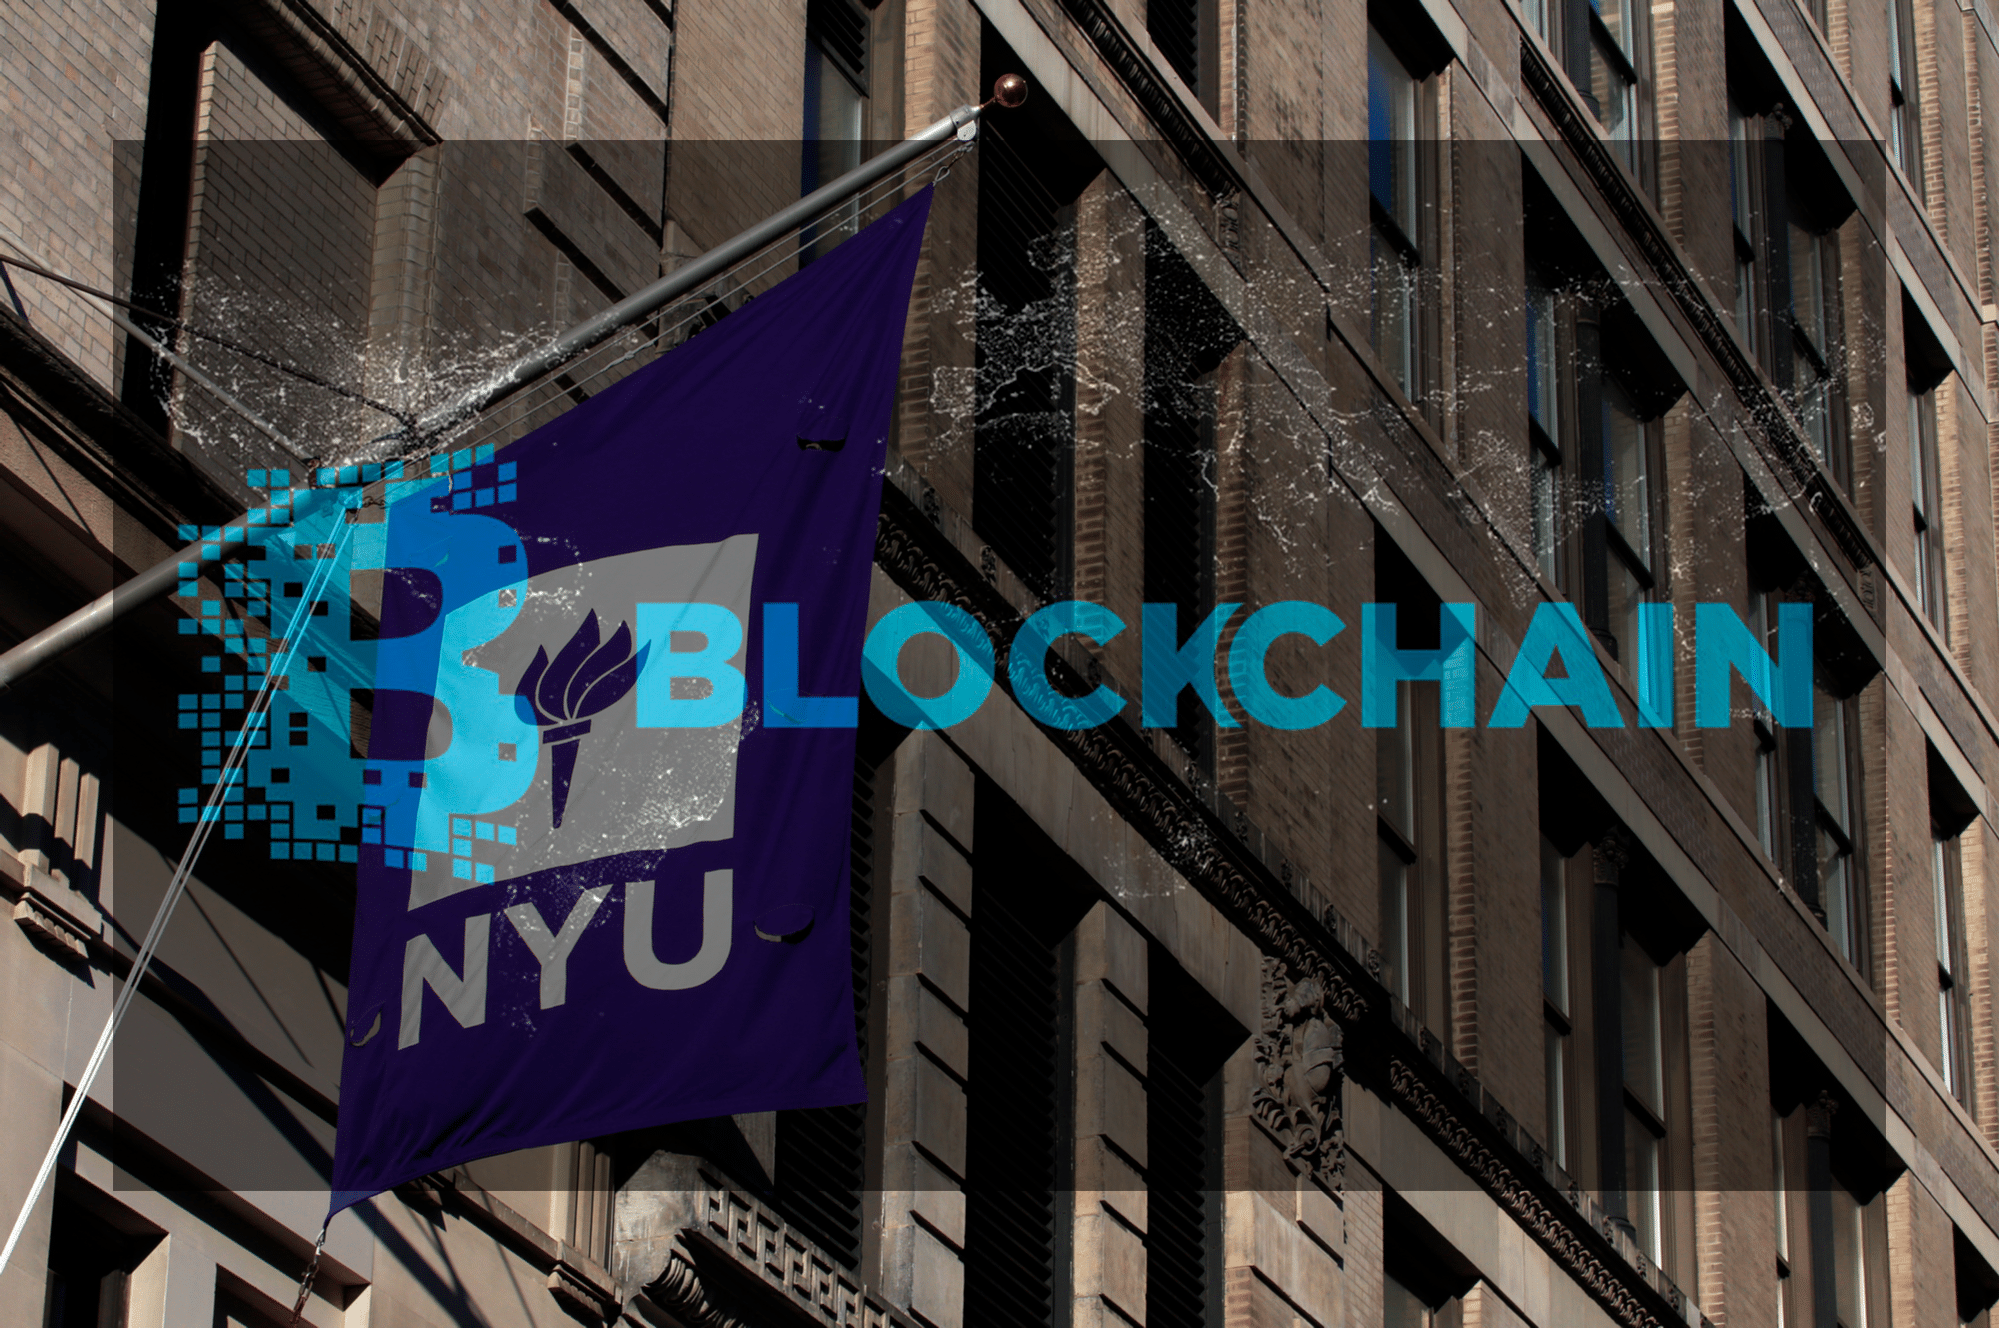 New York University: 1st to introduce Major in Blockchain Technology